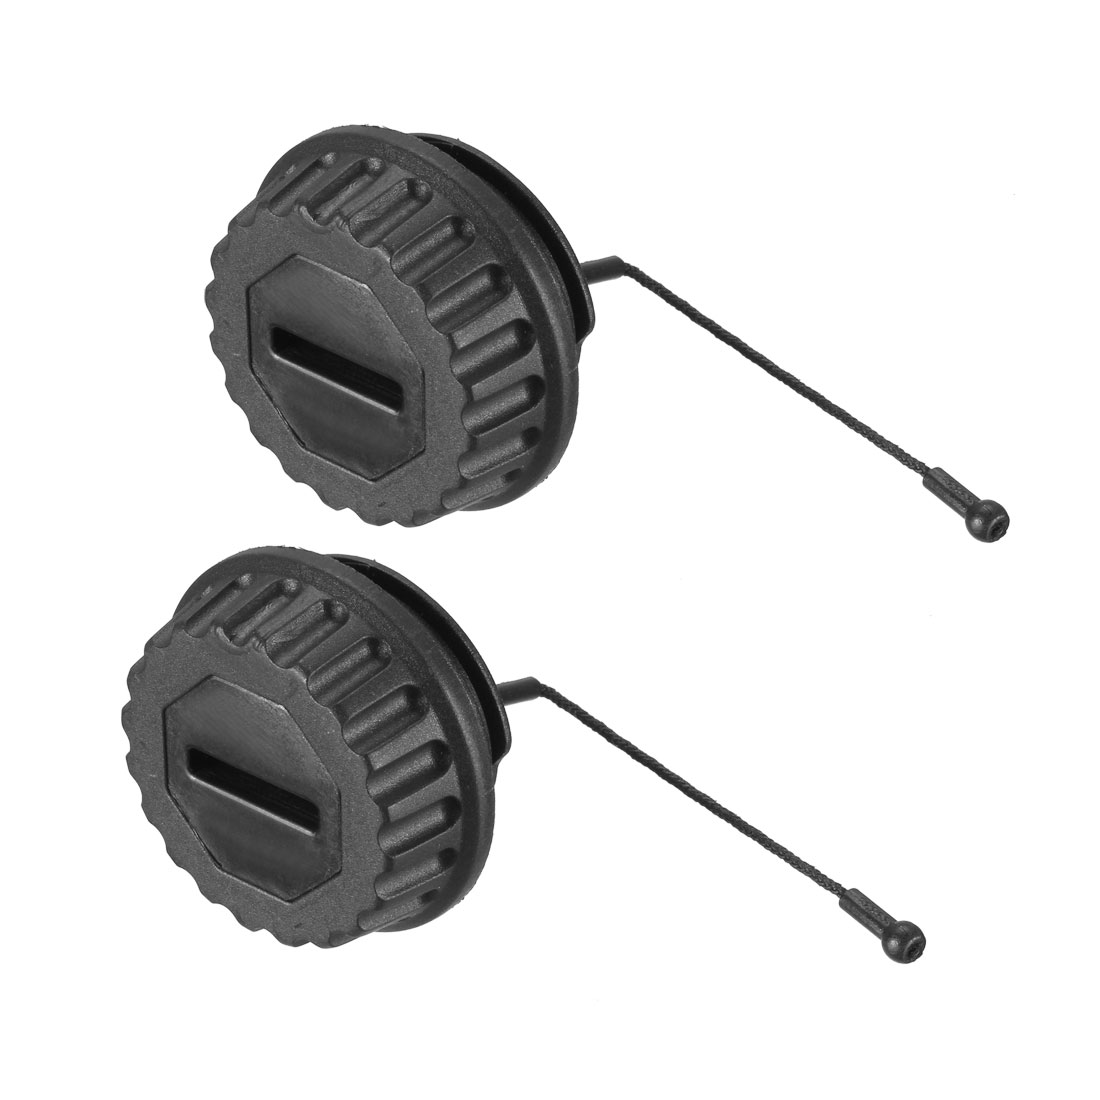 Gas Fuel Cap for STIHL MS290 MS310 MS390 MS640 MS650 MS660 Chainsaw 2pcs